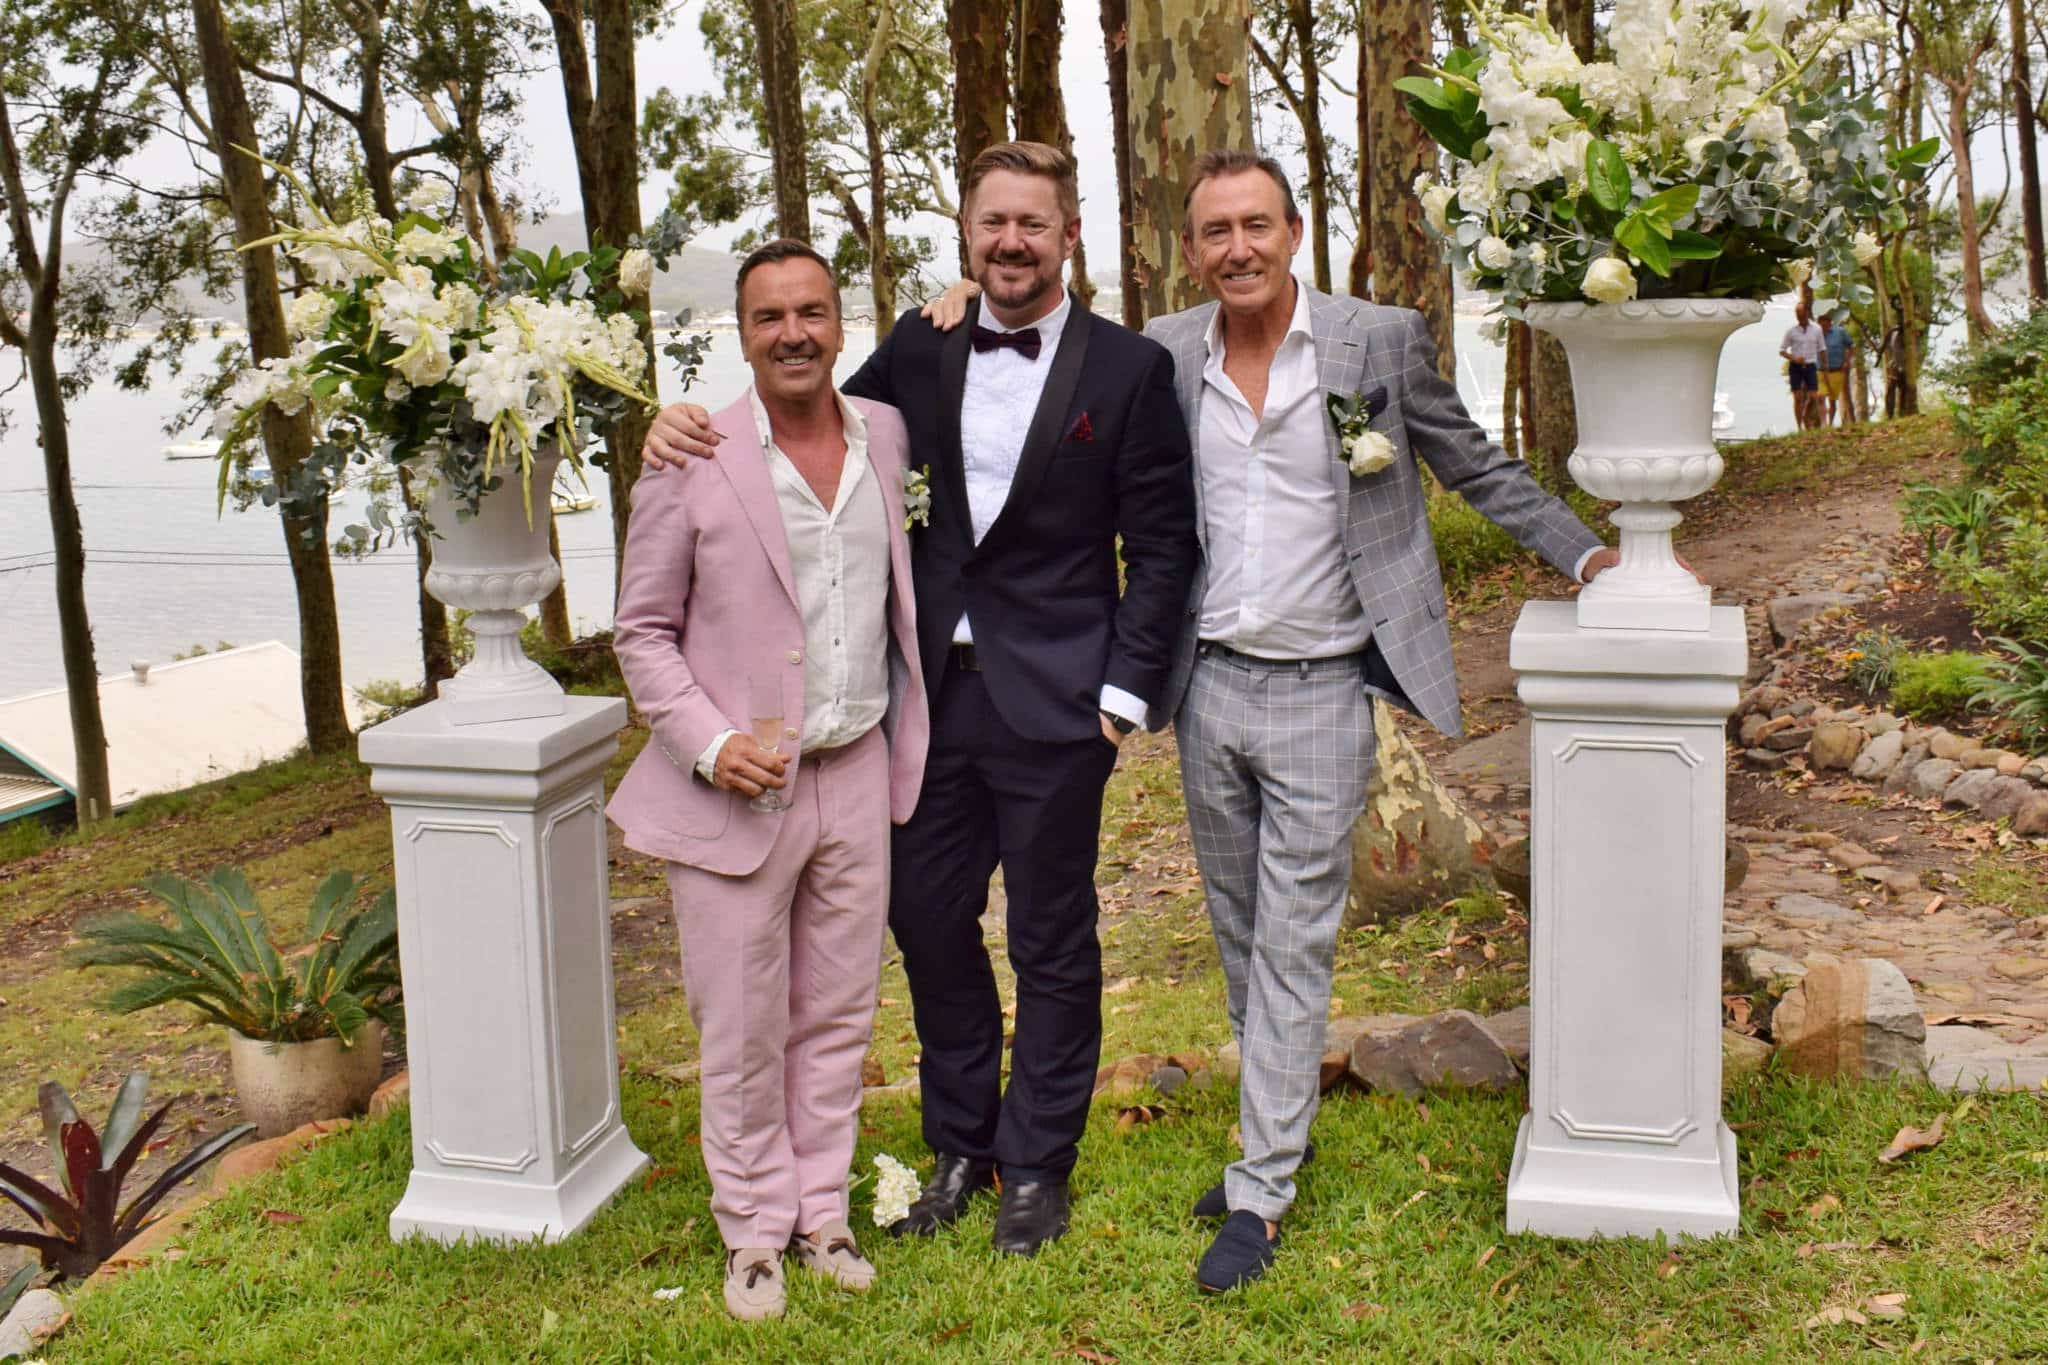 Jeremy and Tim Central Coast Wedding - Stephen Lee Sydney Marriage Celebrant